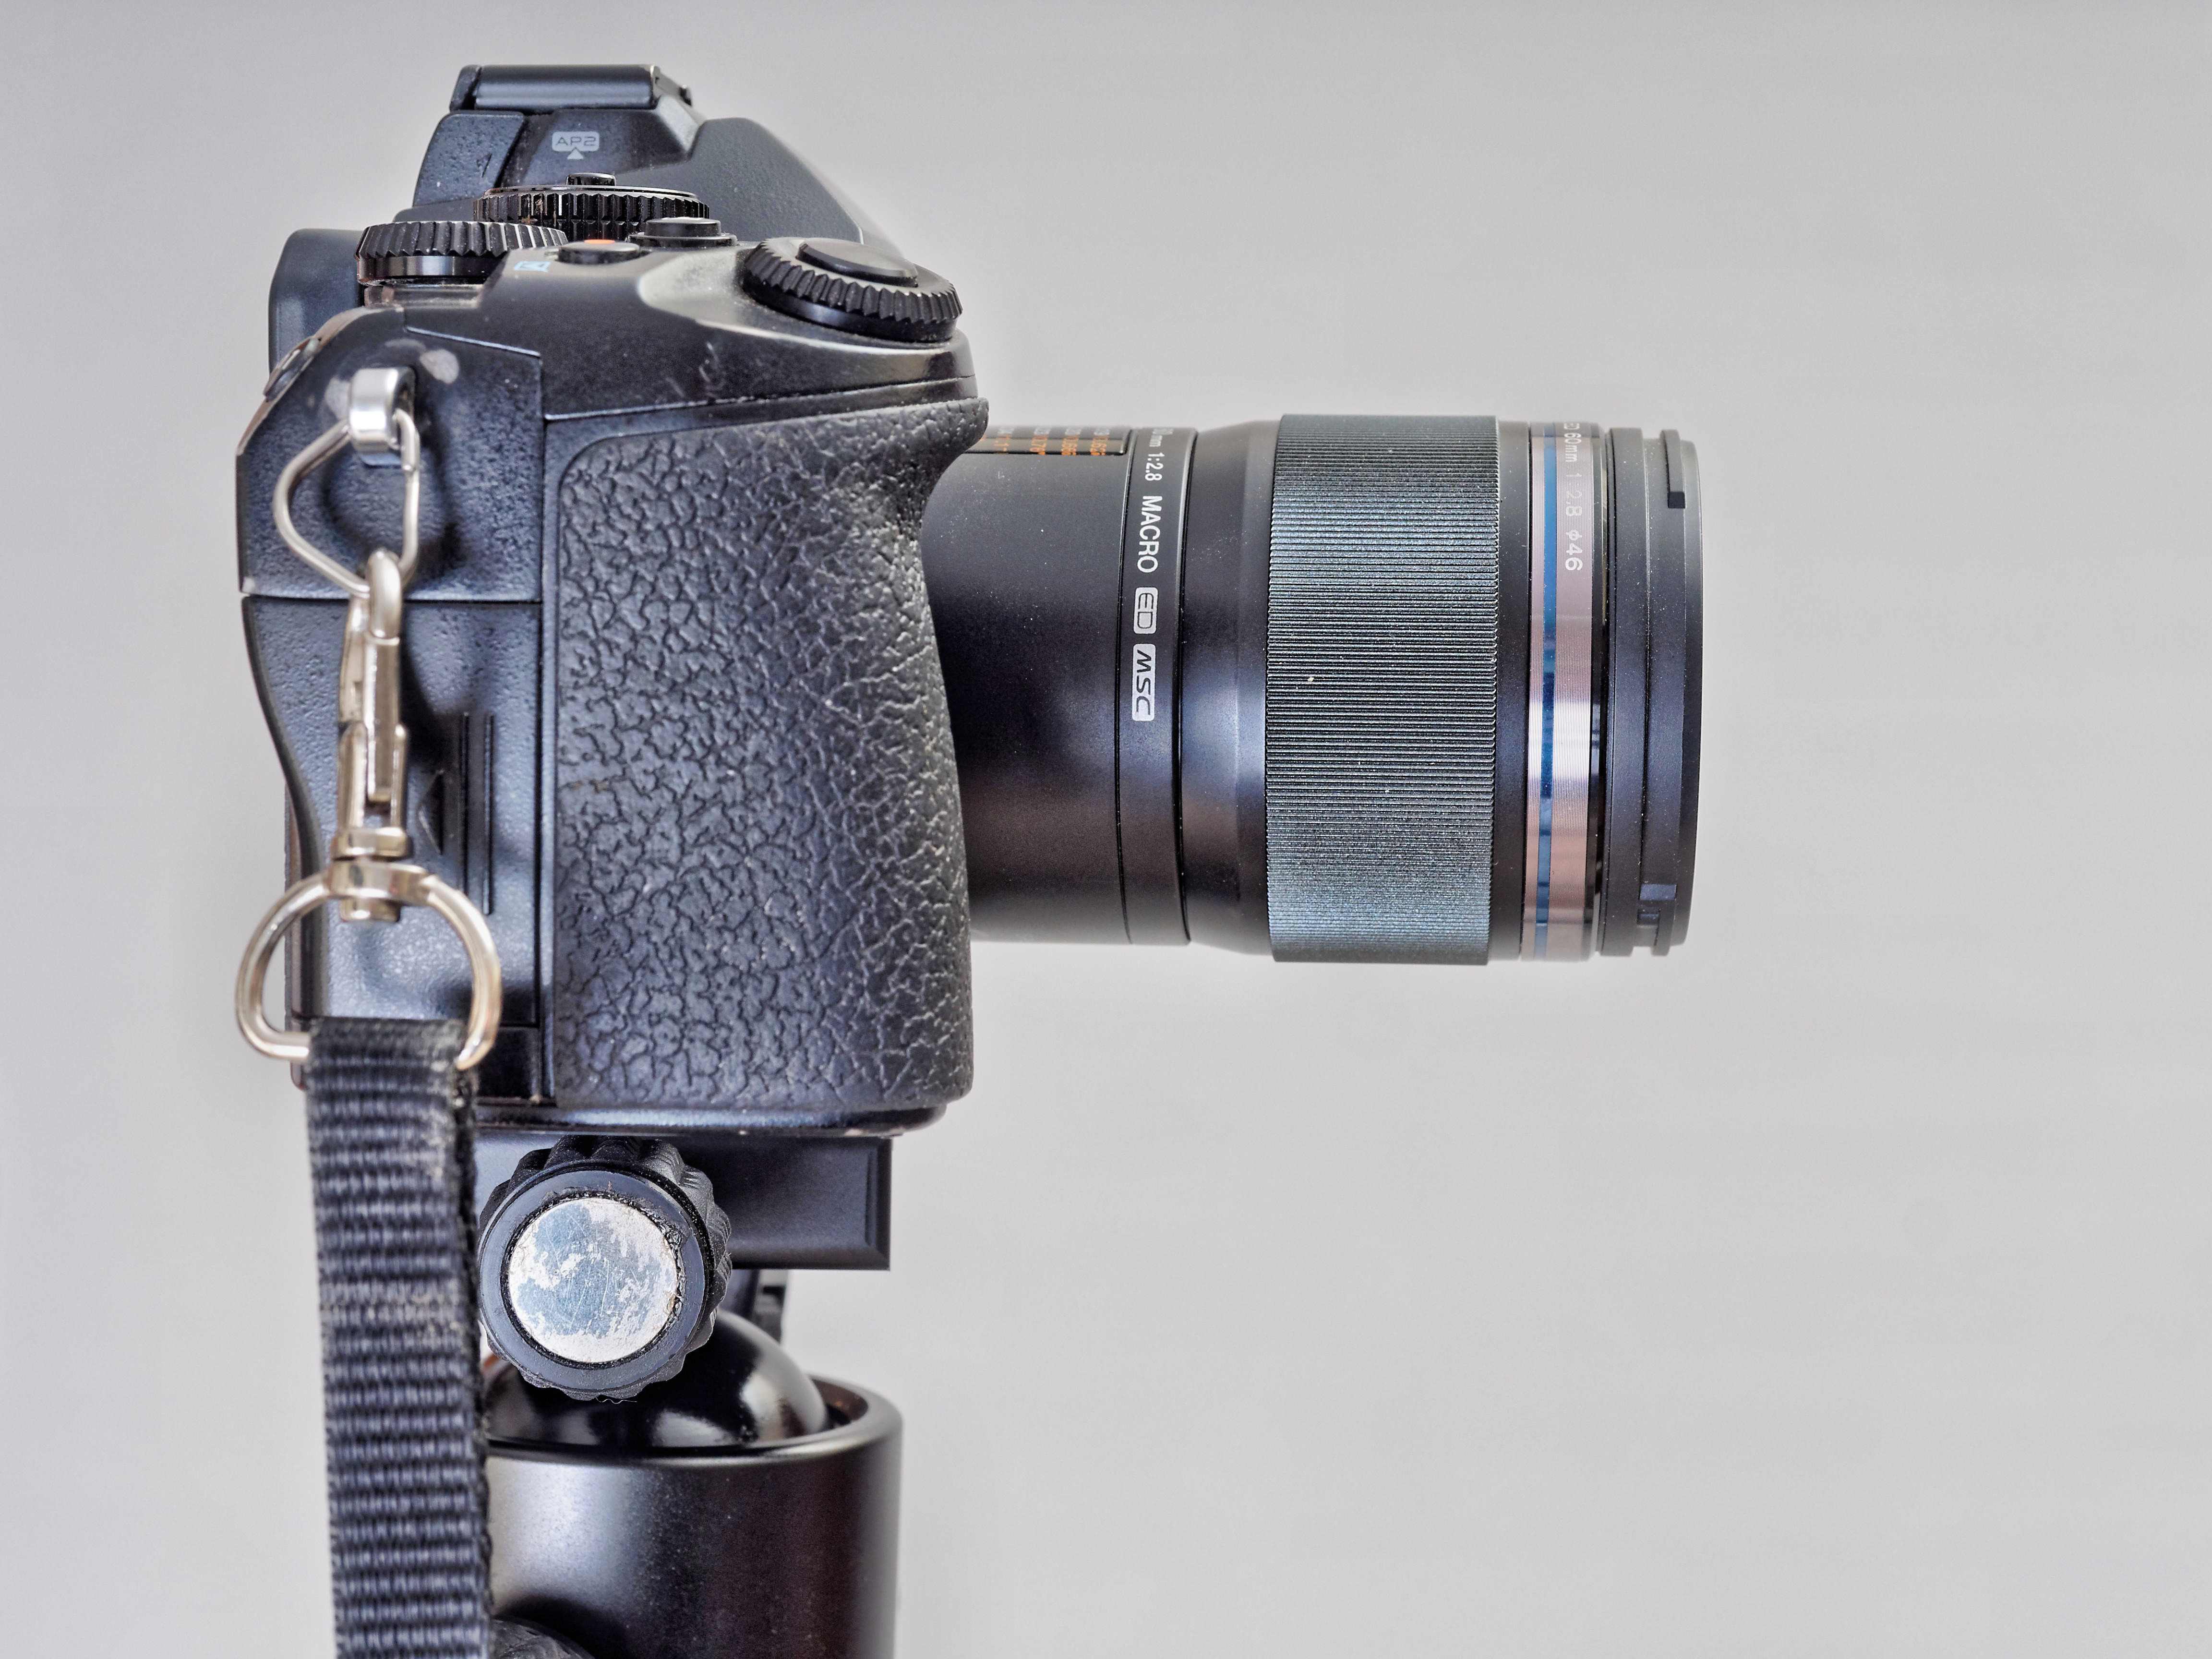 This should be E-M1-Z60-1.jpeg.  Is it missing?